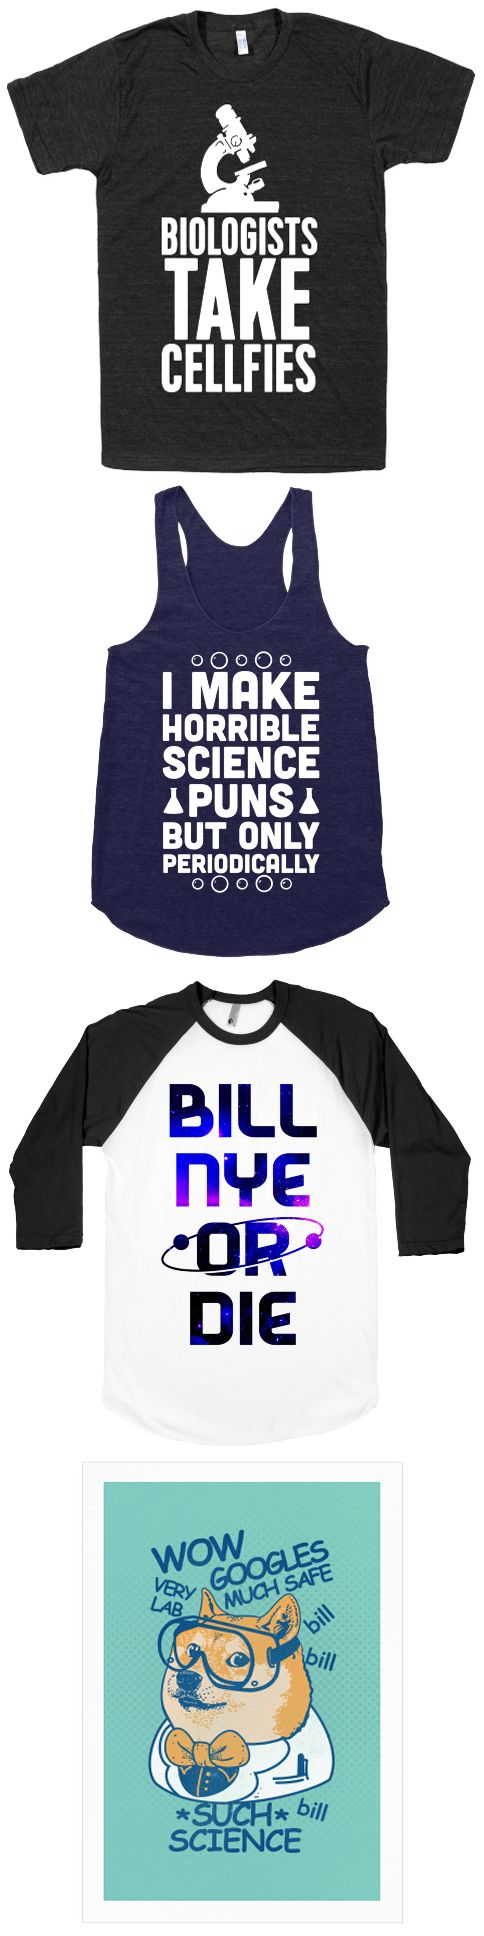 If you love everything science, this collection is for you. It's also a perfect gift for the favorite geek in your life.